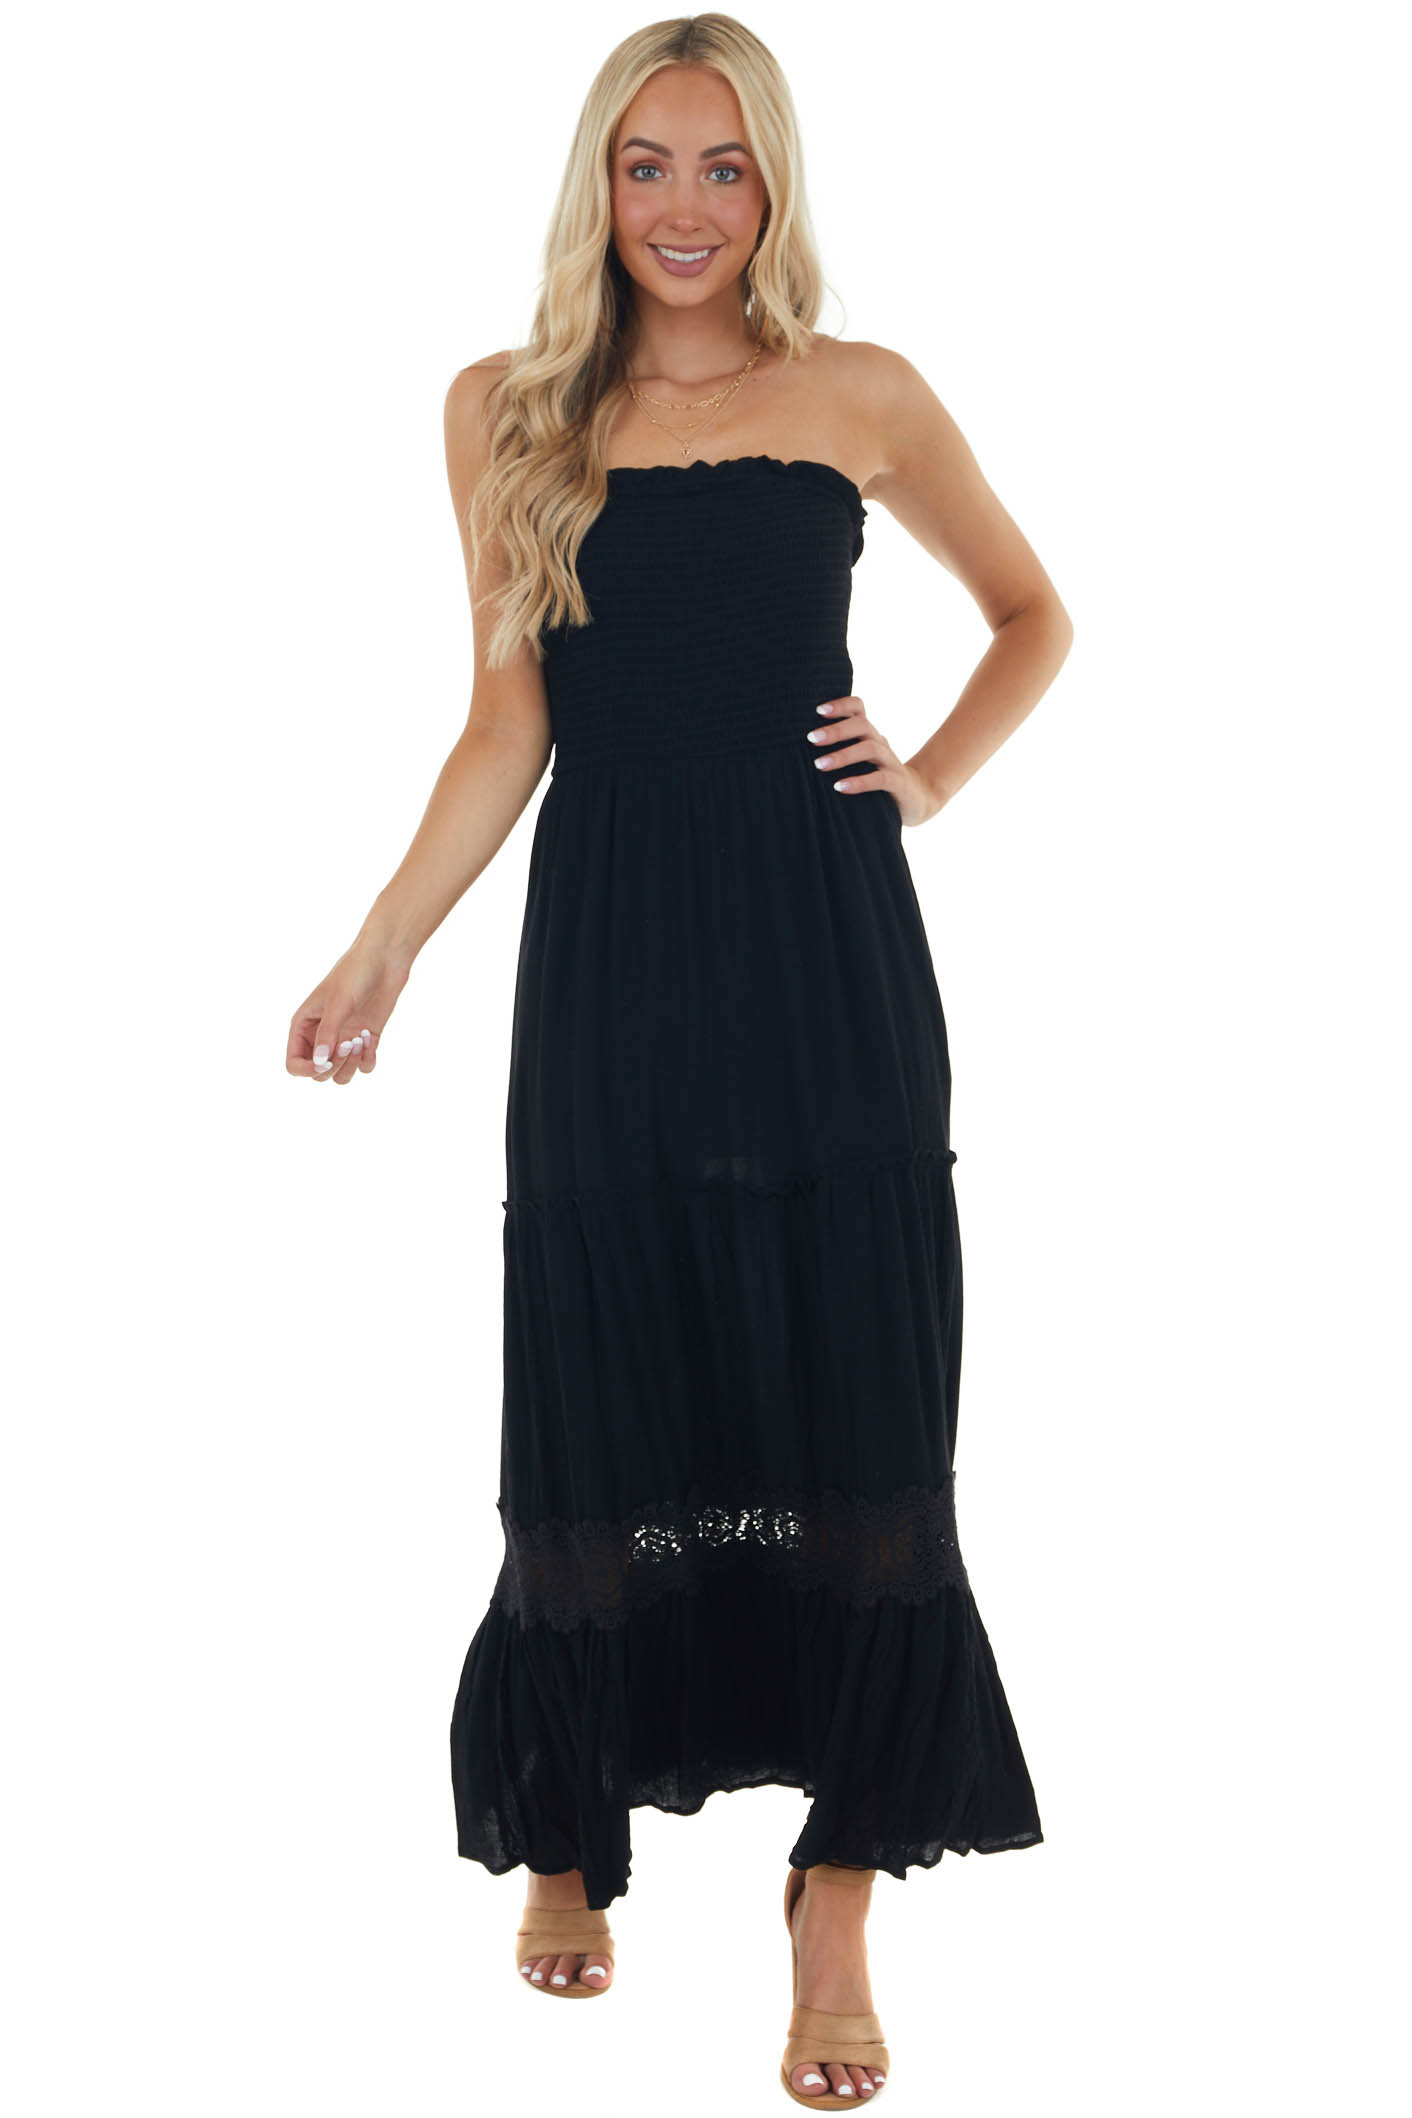 Black Strapless Maxi Dress with Smocked and Lace Details